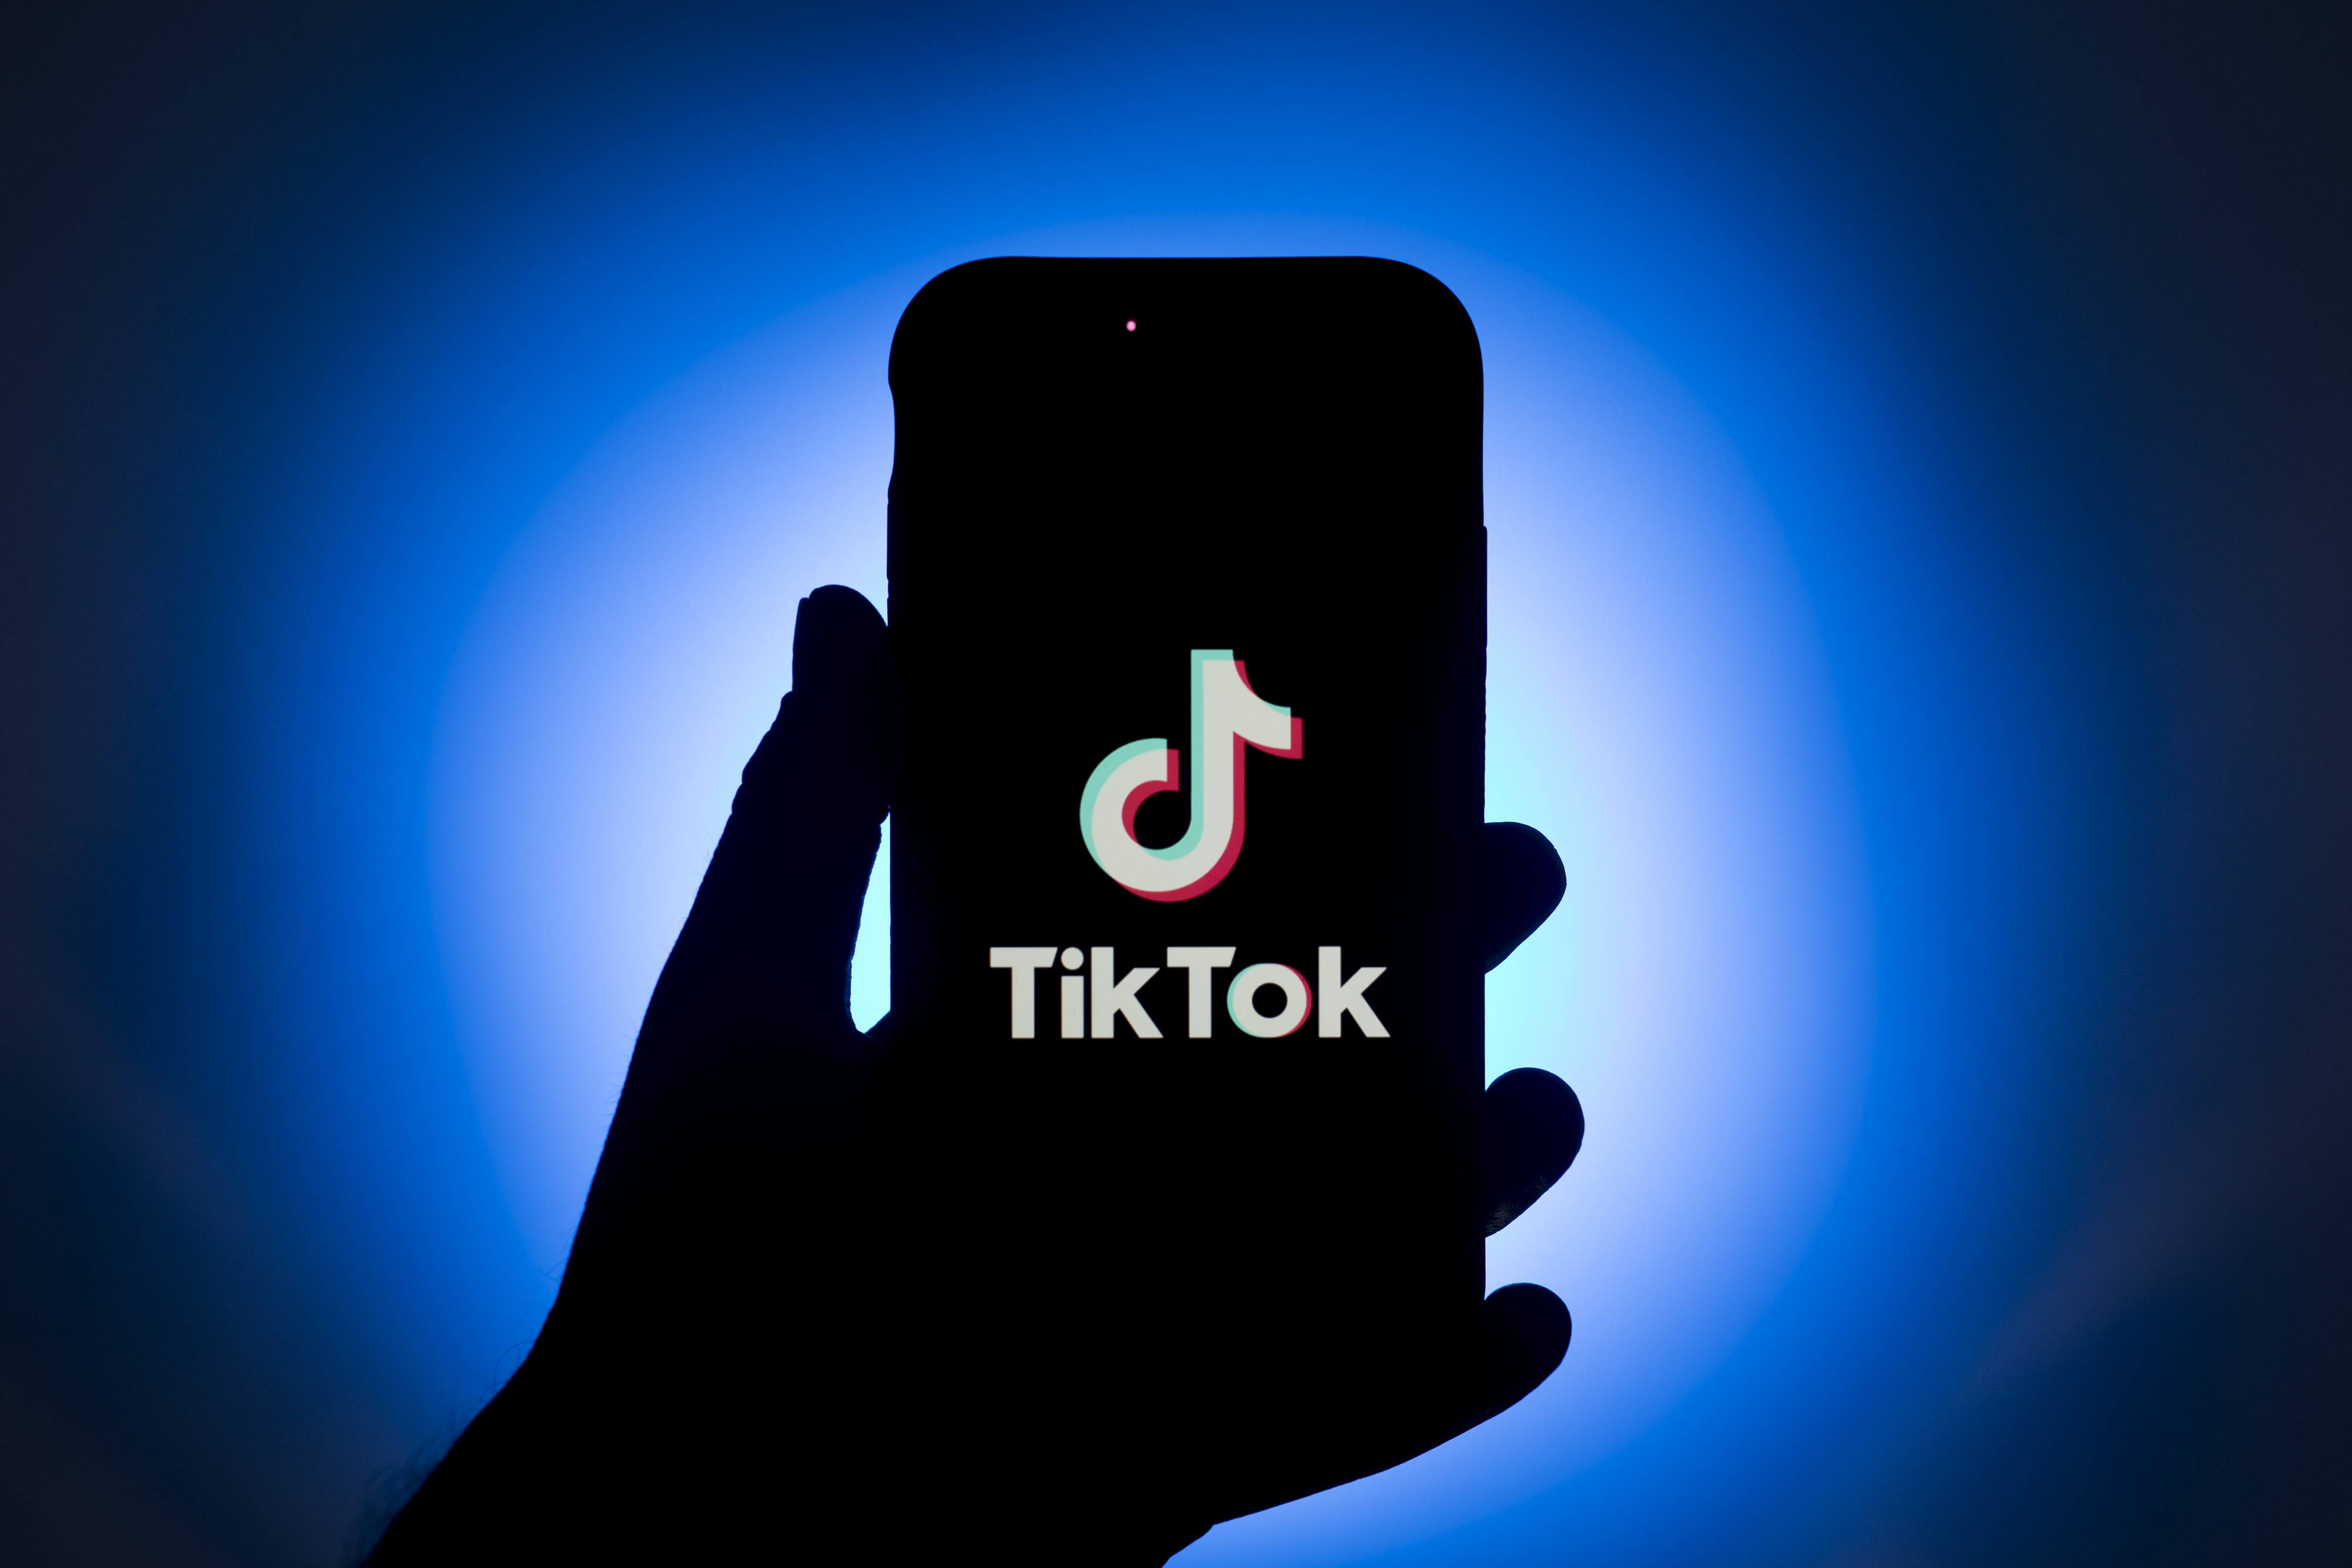 TikTok Branding As Oracle Is Said to Win Deal For US Operations